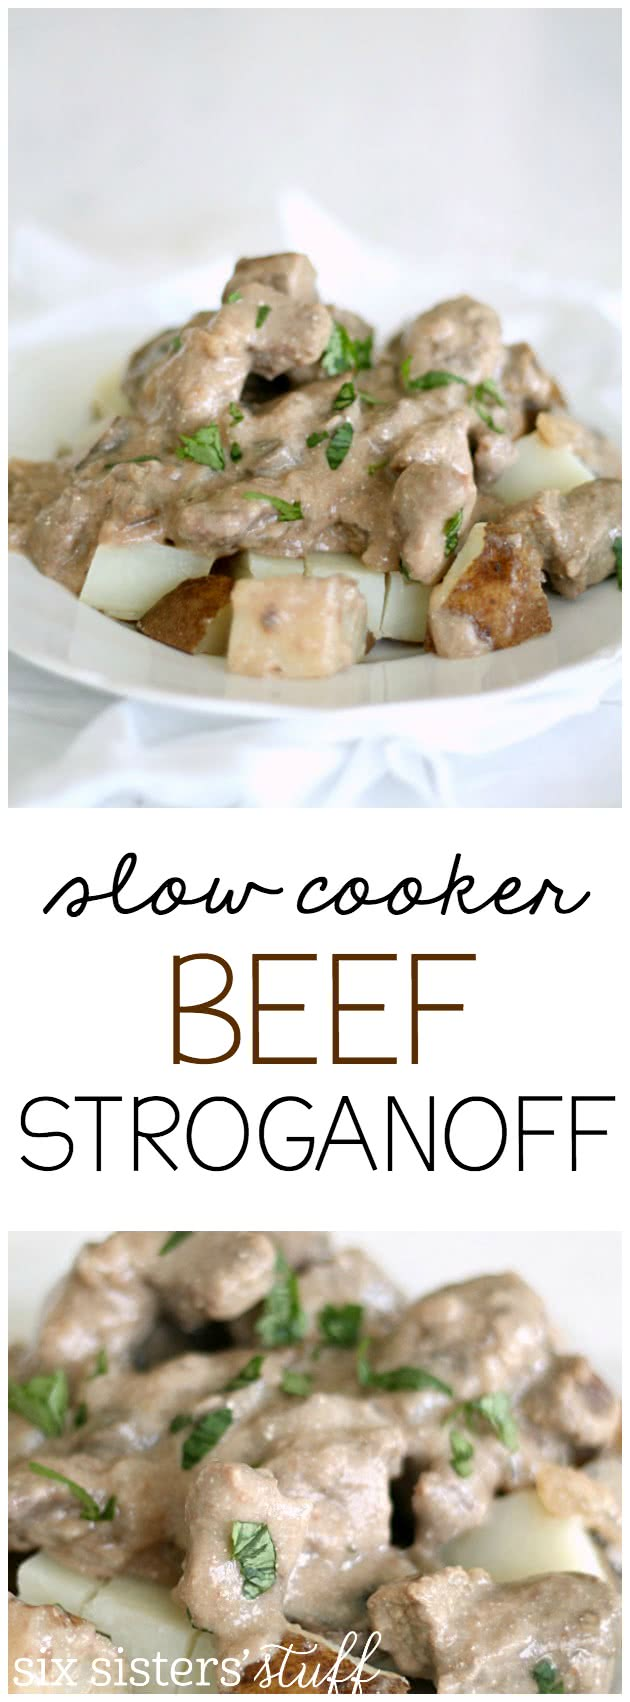 Slow Cooker Beef Stroganoff Recipe from SixSistersStuff.com. So easy to make!